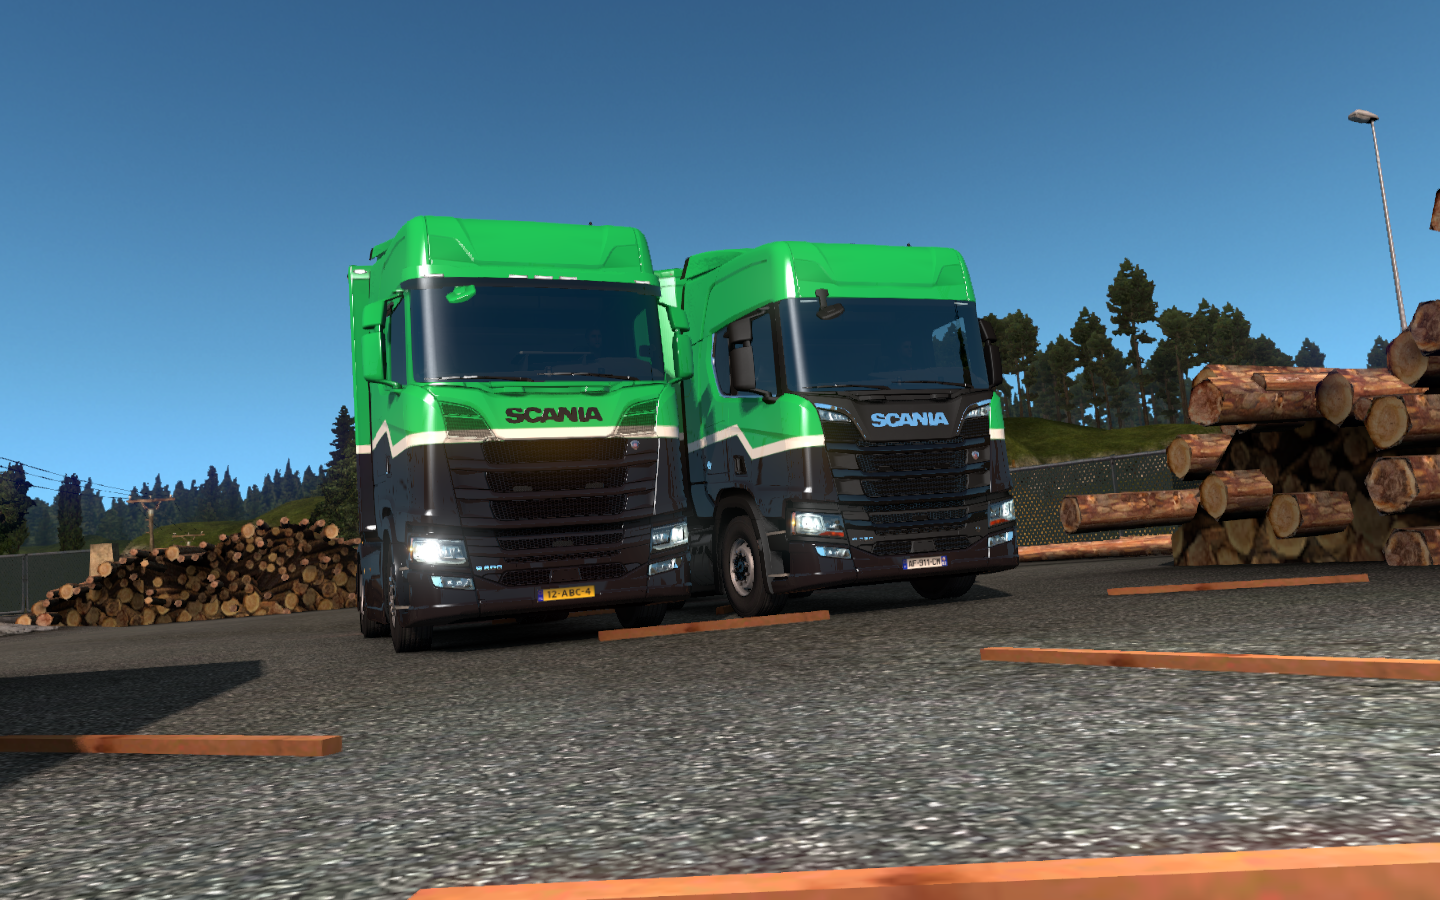 ets2_20181202_153719_00.png